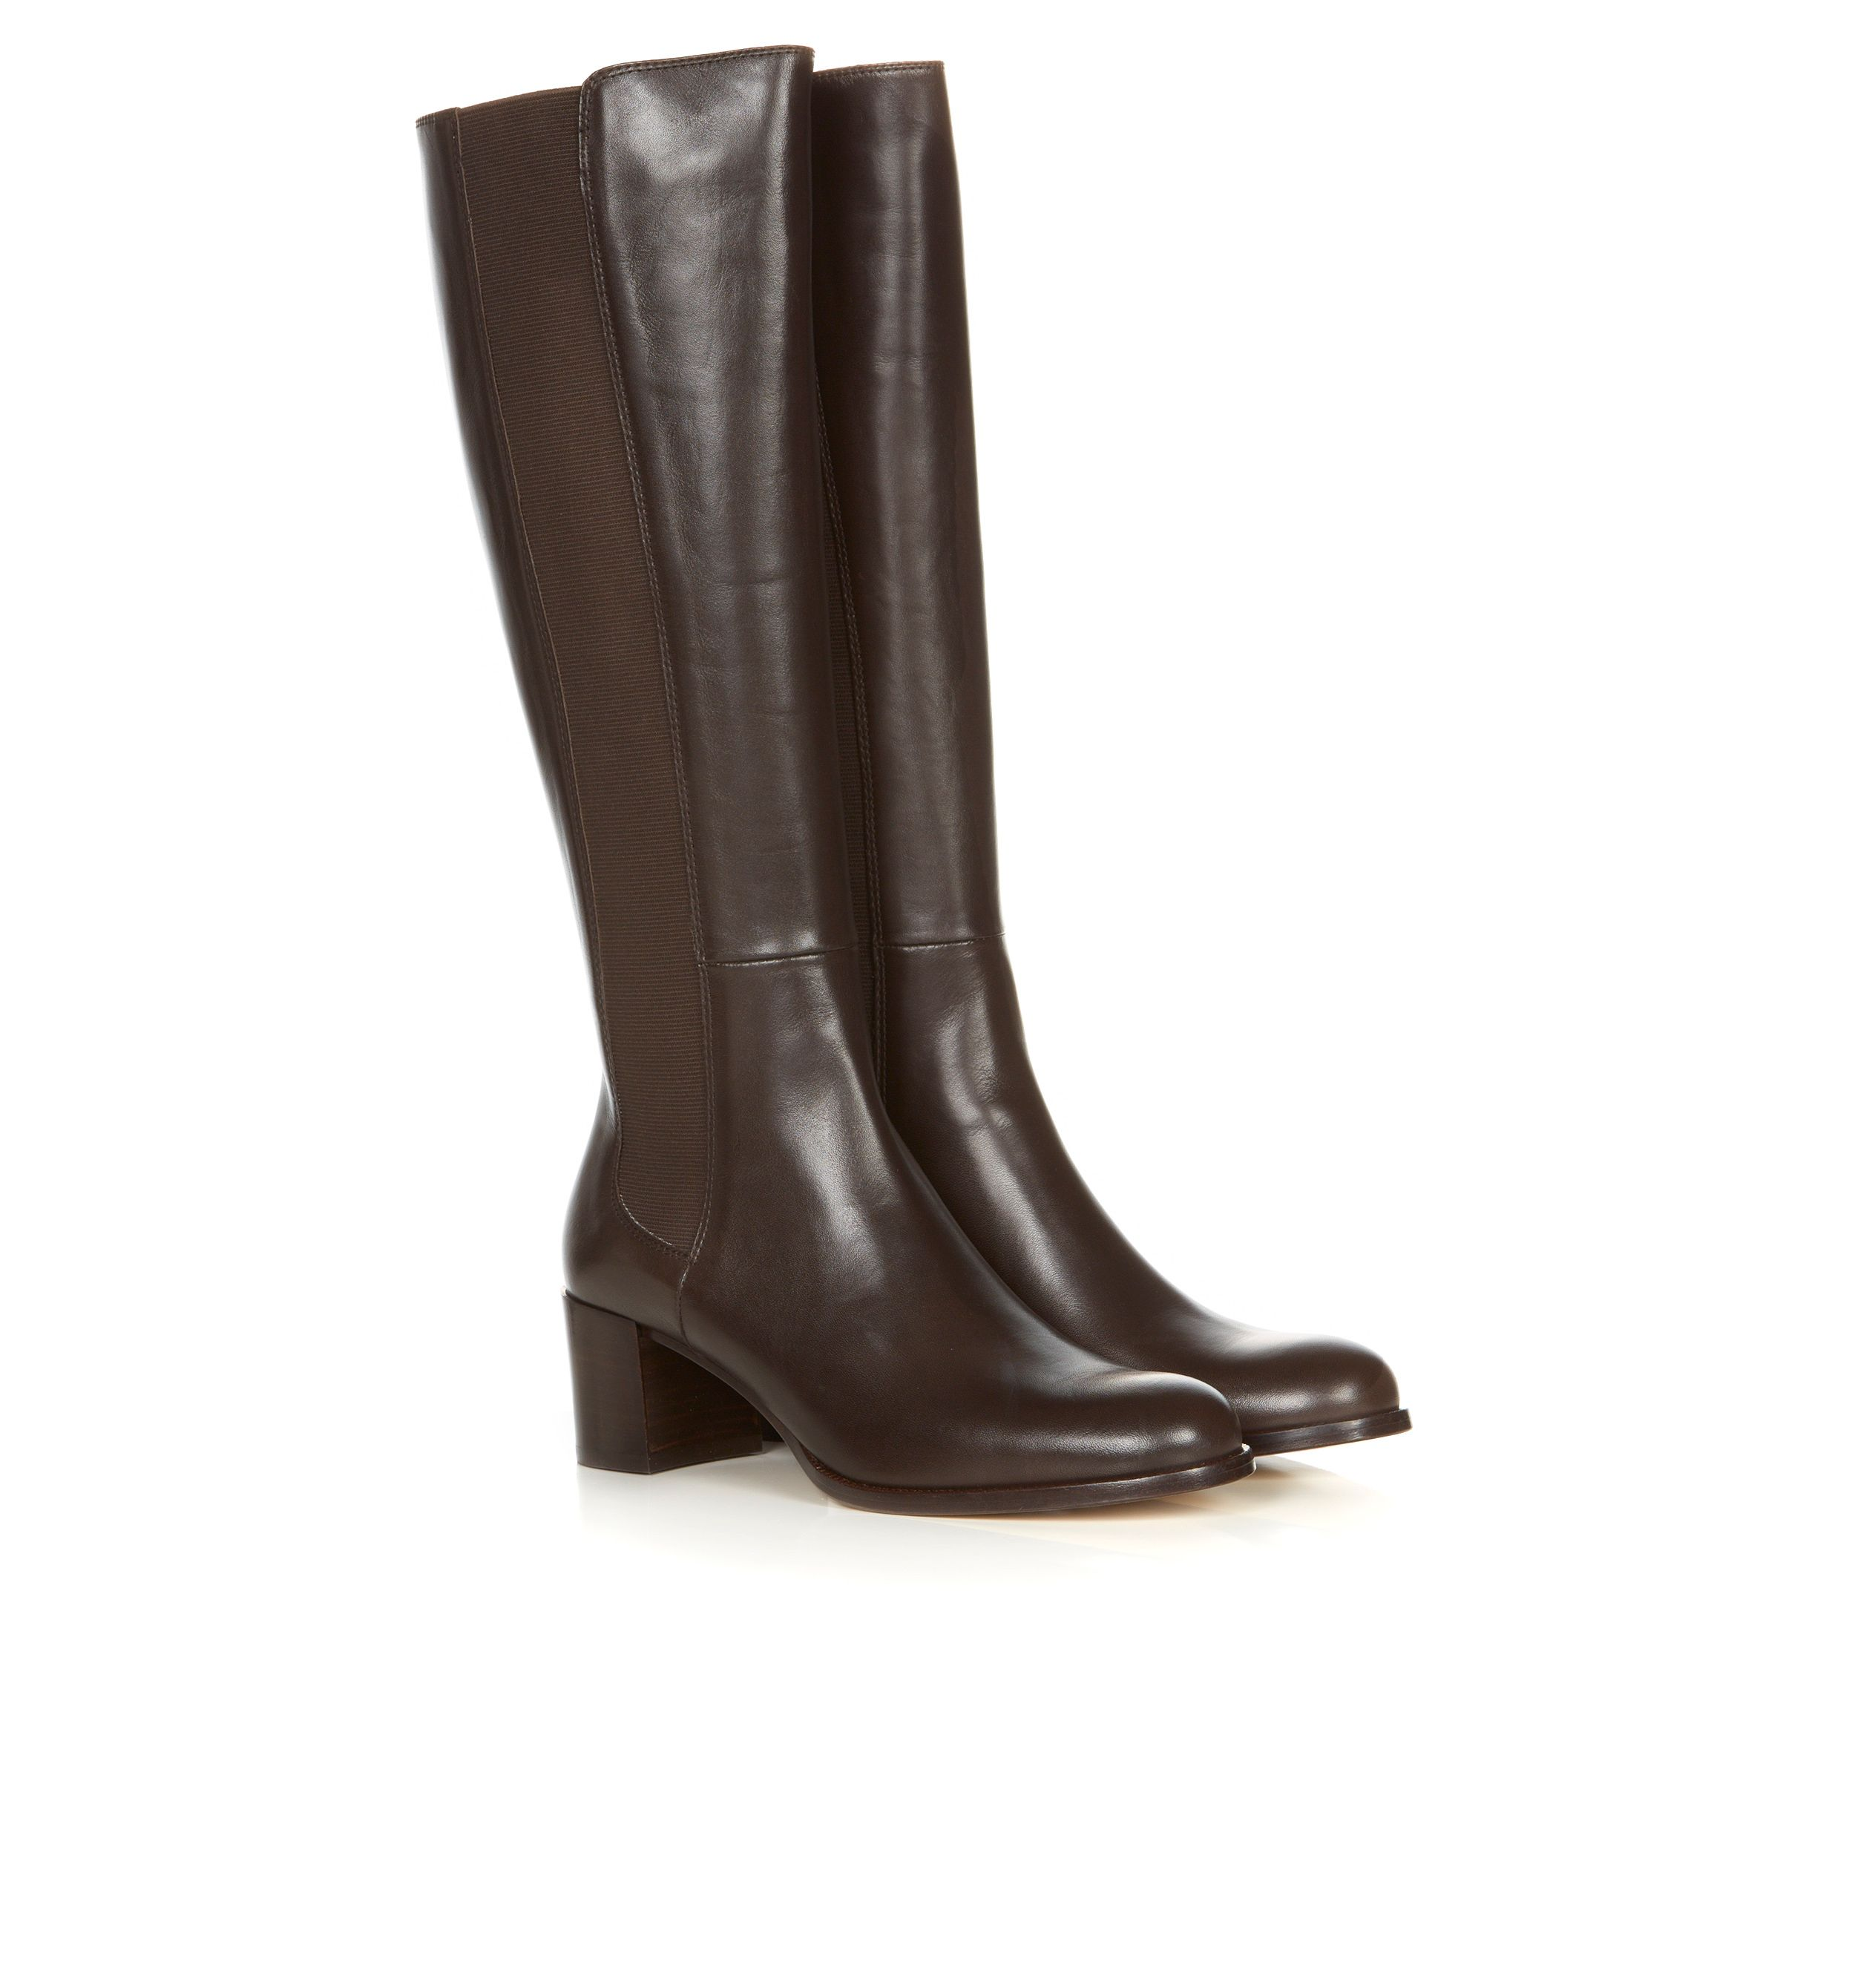 hobbs boots in brown chocolate lyst